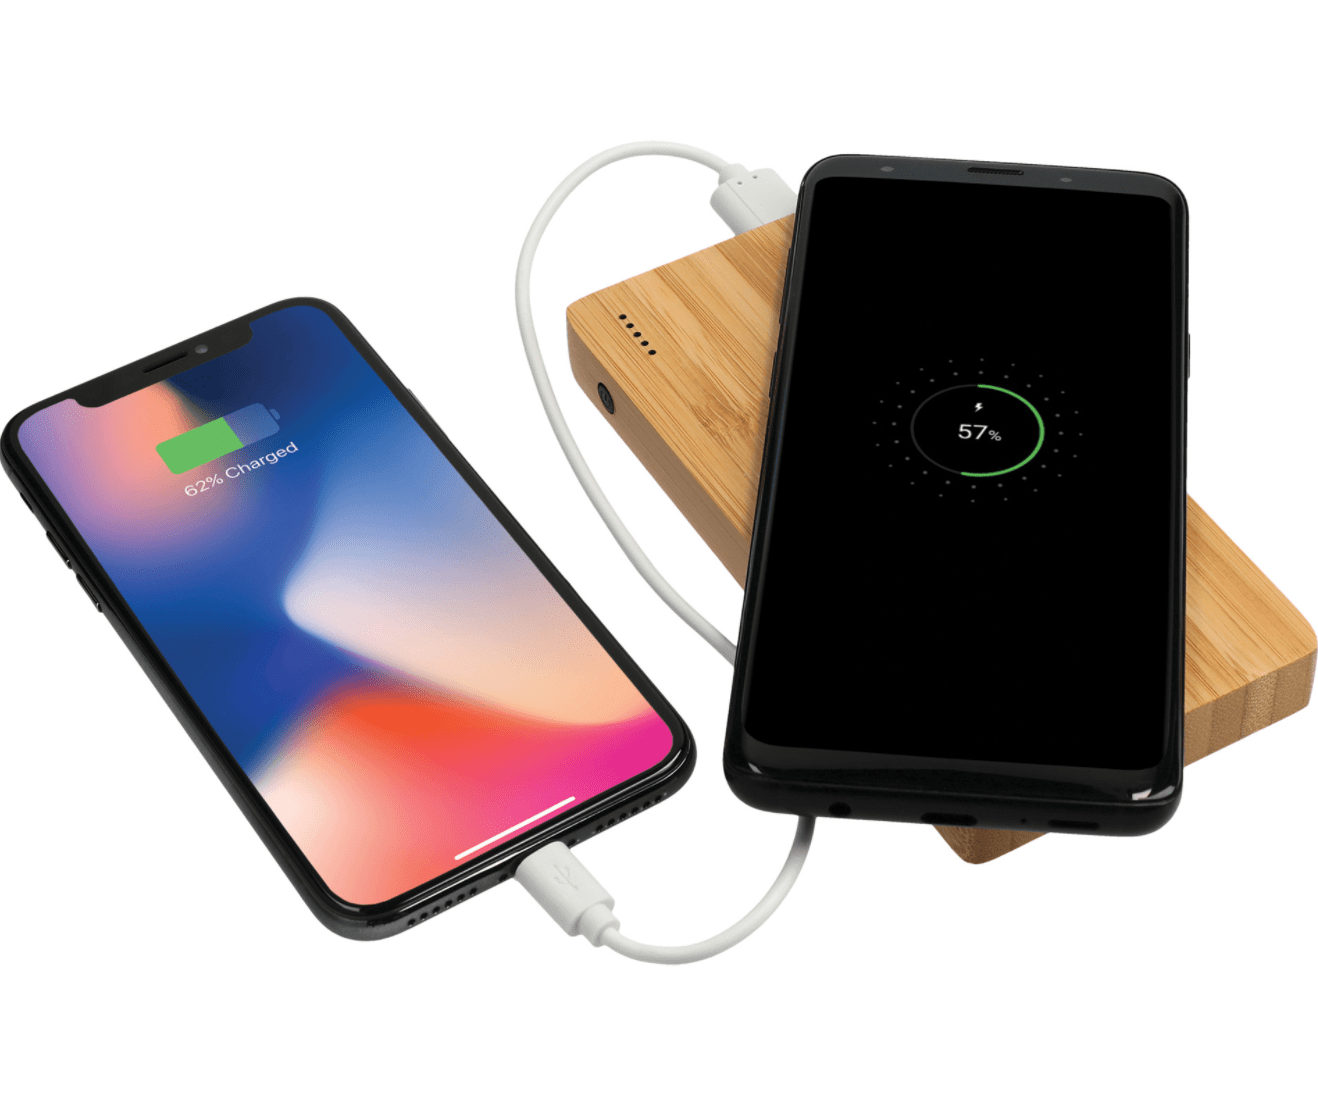 PCNA Wireless Charger 1